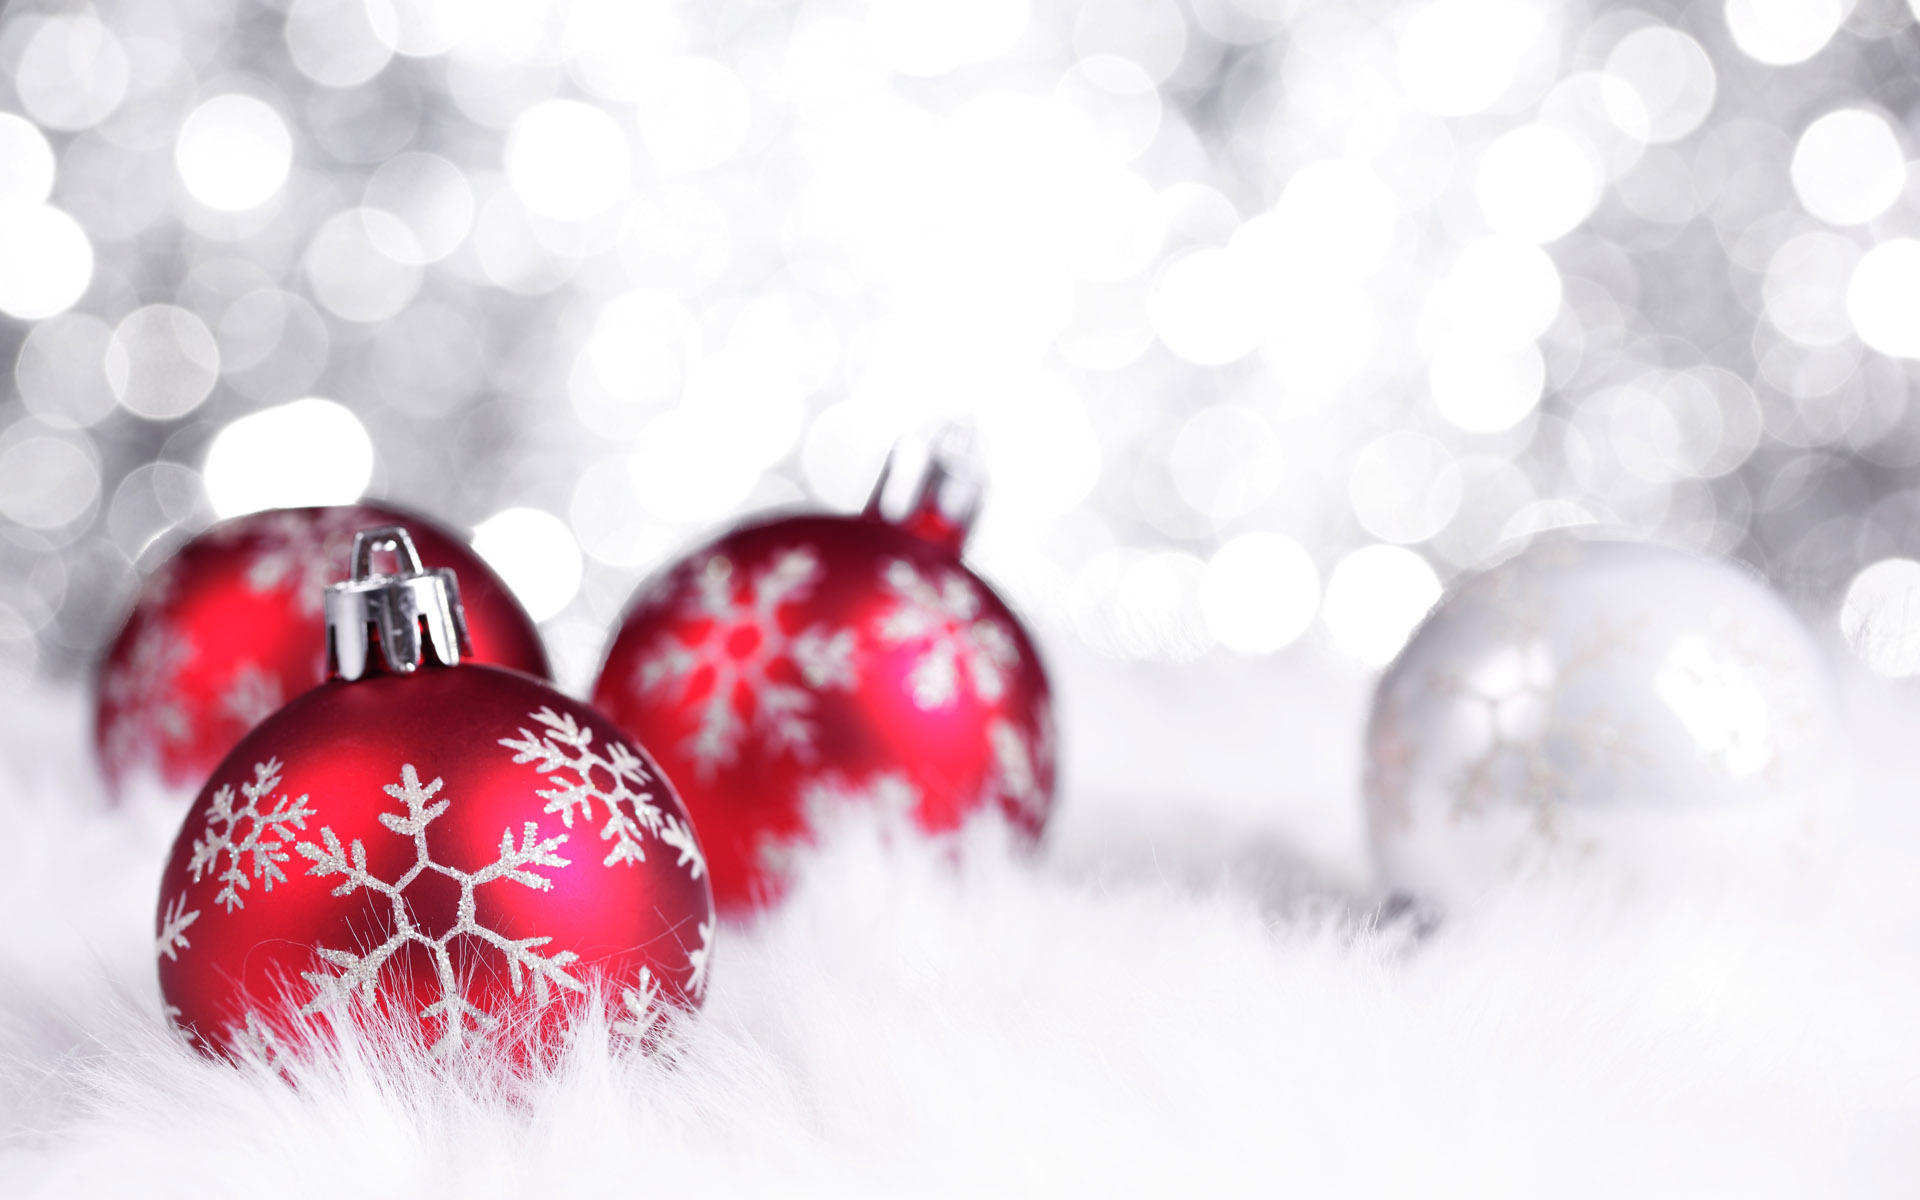 25 Best Colorful Christmas Wallpapers: 2014 | Smash Blog Trends